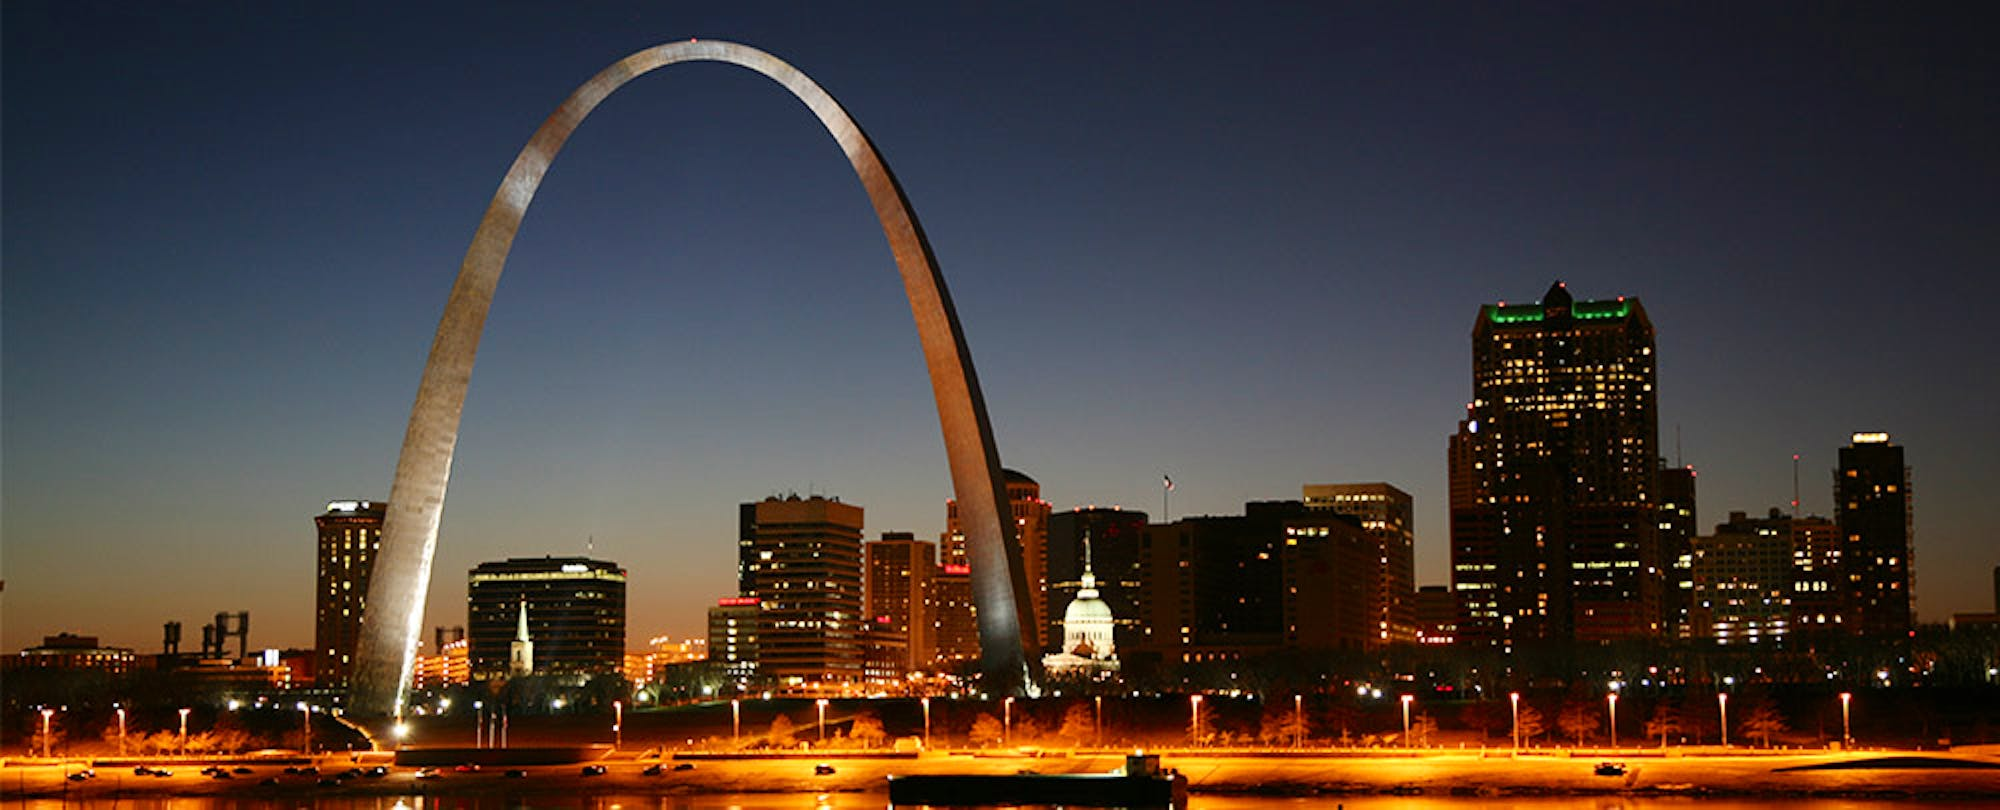 What Makes St. Louis a Model for Grassroots Community-Building